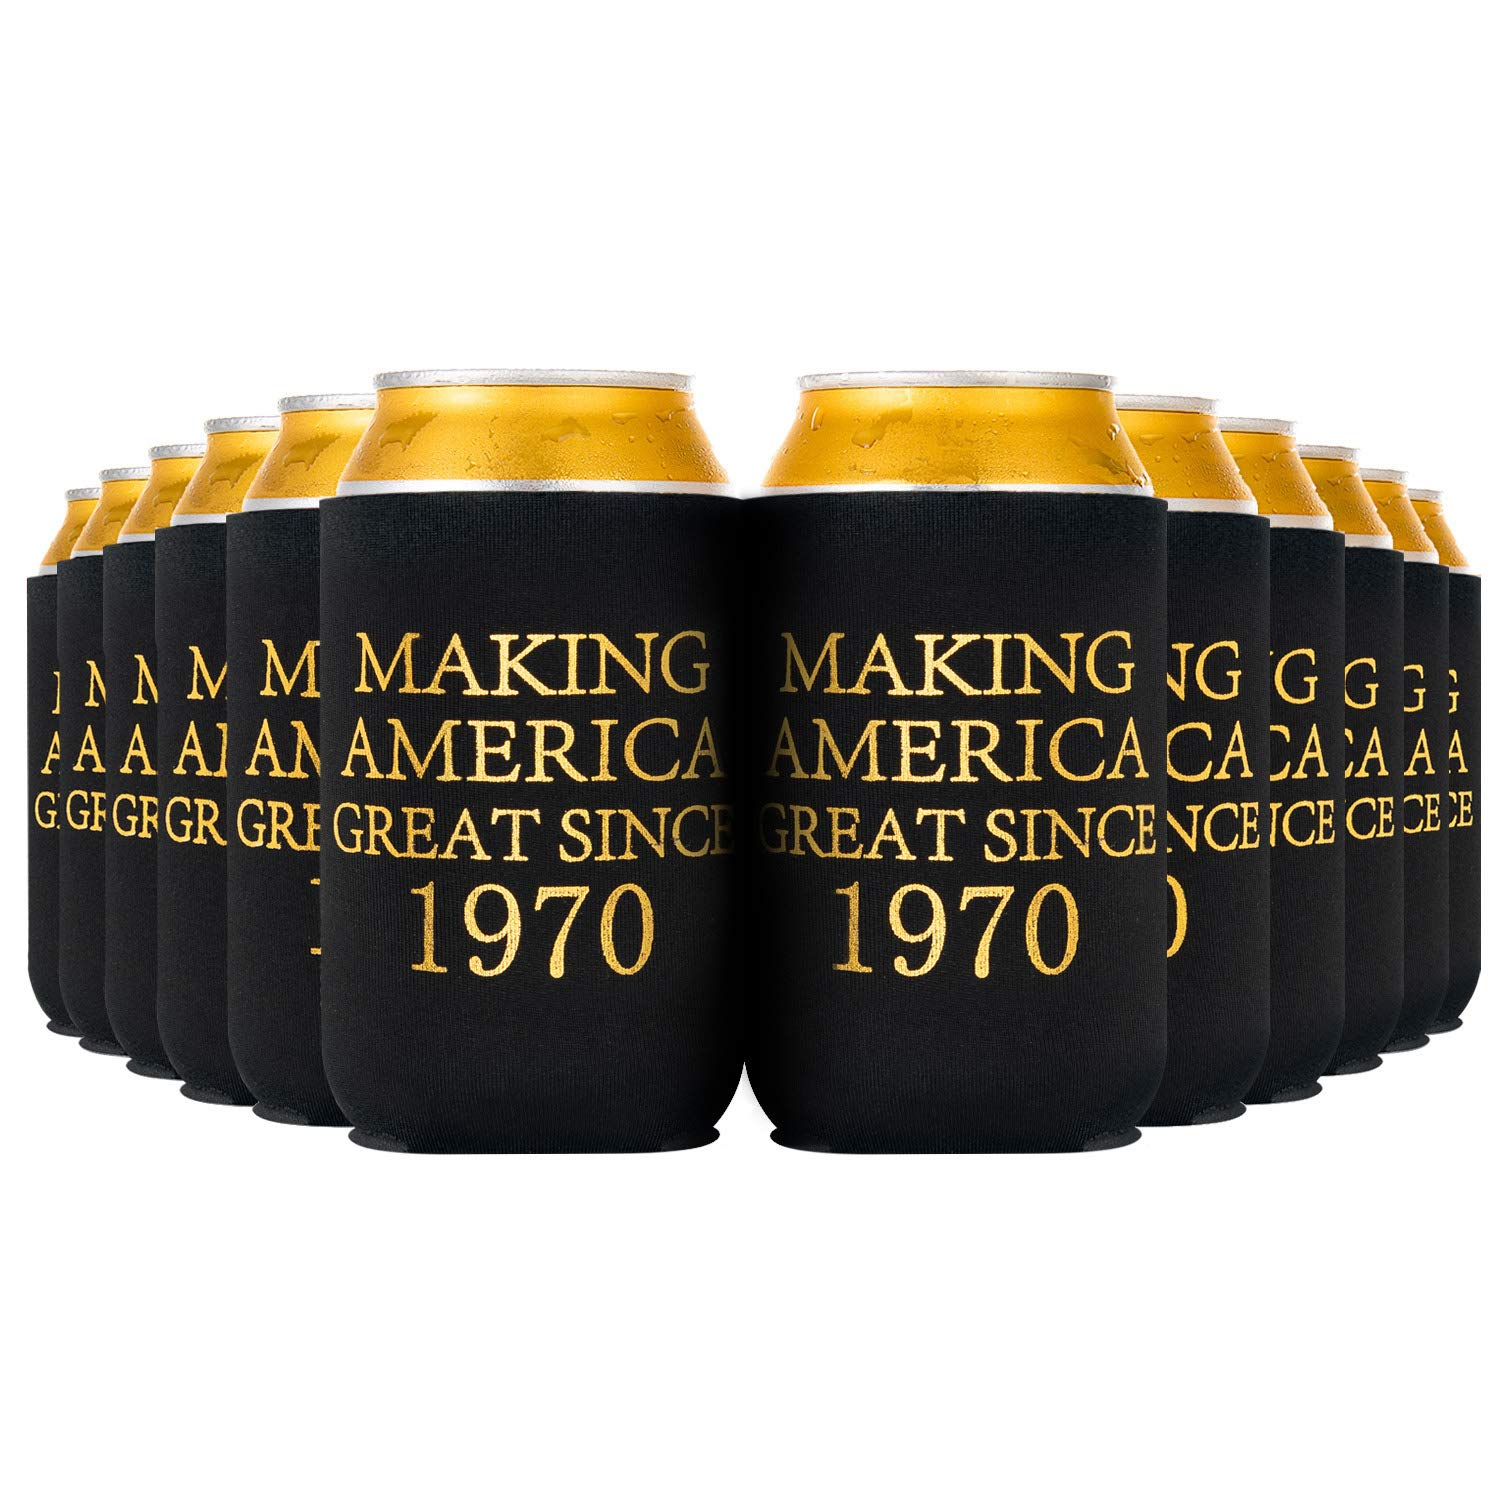 Crisky 50th Birthday Beer Sleeve, 50th Birthday Can Cooler Insulated Covers, 50th Birthday Decorations Black Gold Making America Great Since 1970, Neoprene Coolers for Soda, Beer, Can Beverage, 12 Pcs